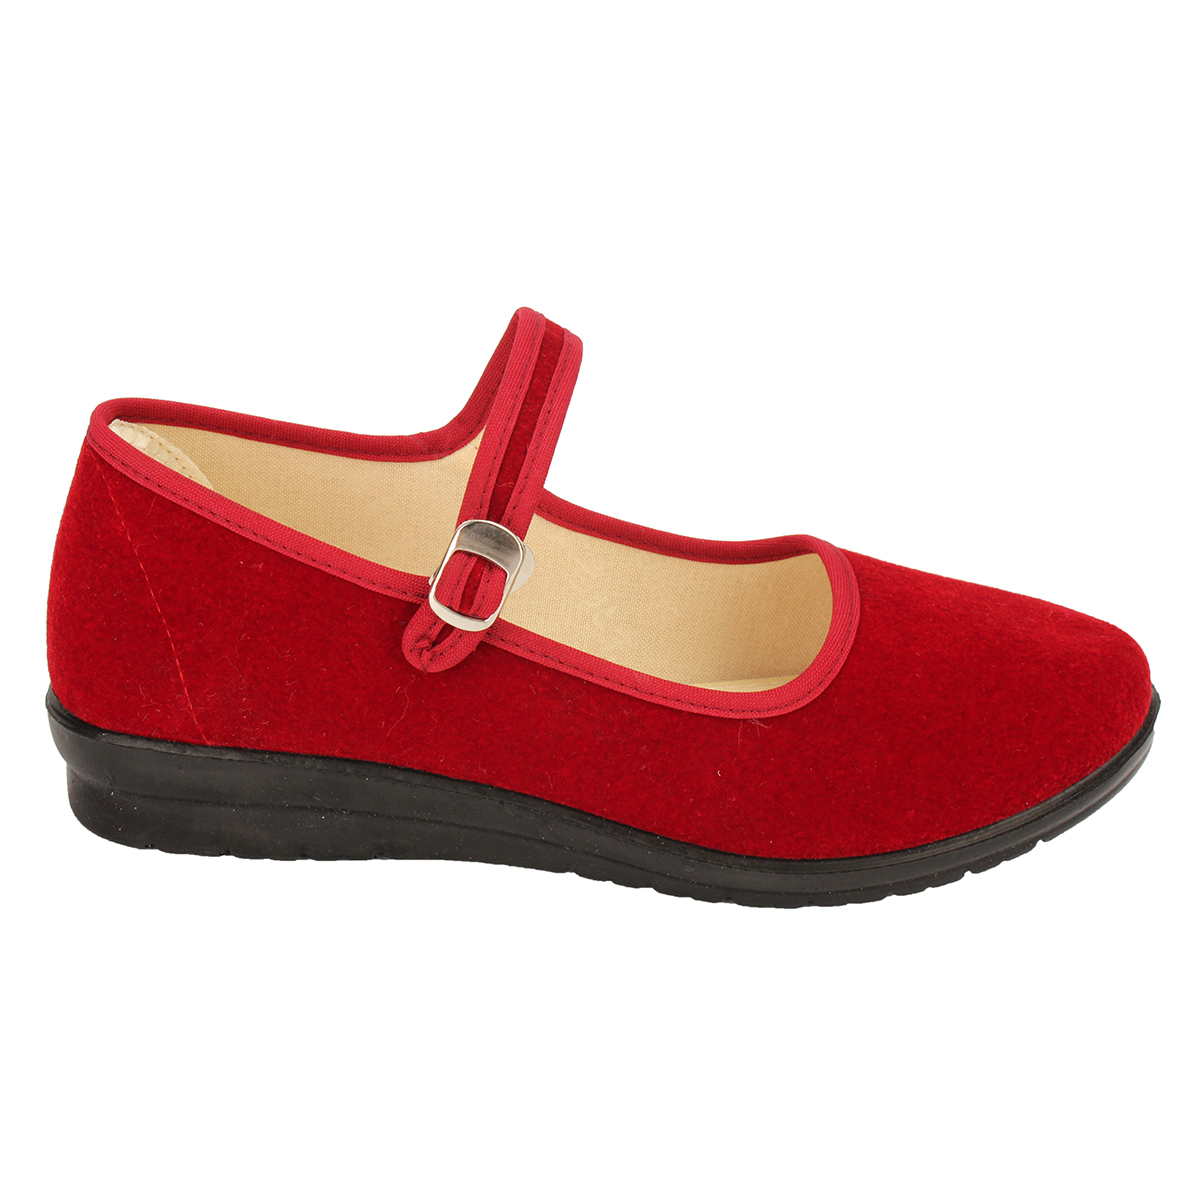 Women-039-s-Mid-Wedge-Heel-Mary-Jane-Hotel-Work-Strap-Ballet-Cotton-Buckle-Shoes thumbnail 12